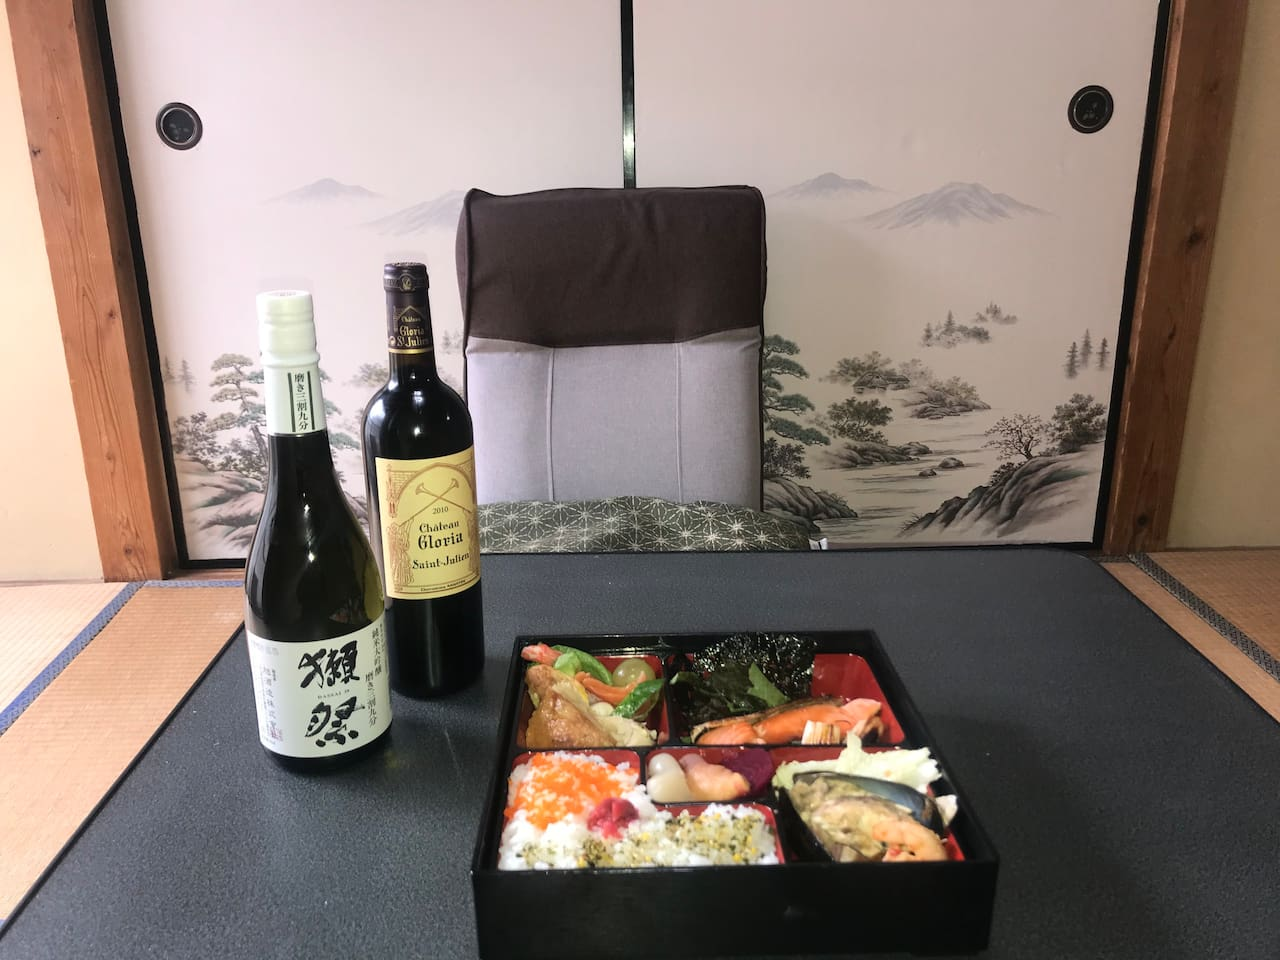 YabFarm Lodge has 4 units, 101, 102, 201, and 202.  You can enjoy a Japanese homemade meal  (charged)  in the lodge as shown in this picture!! If your desired dates for YabFarm  Lodge 202 have already been booked by other guests, book another unit!